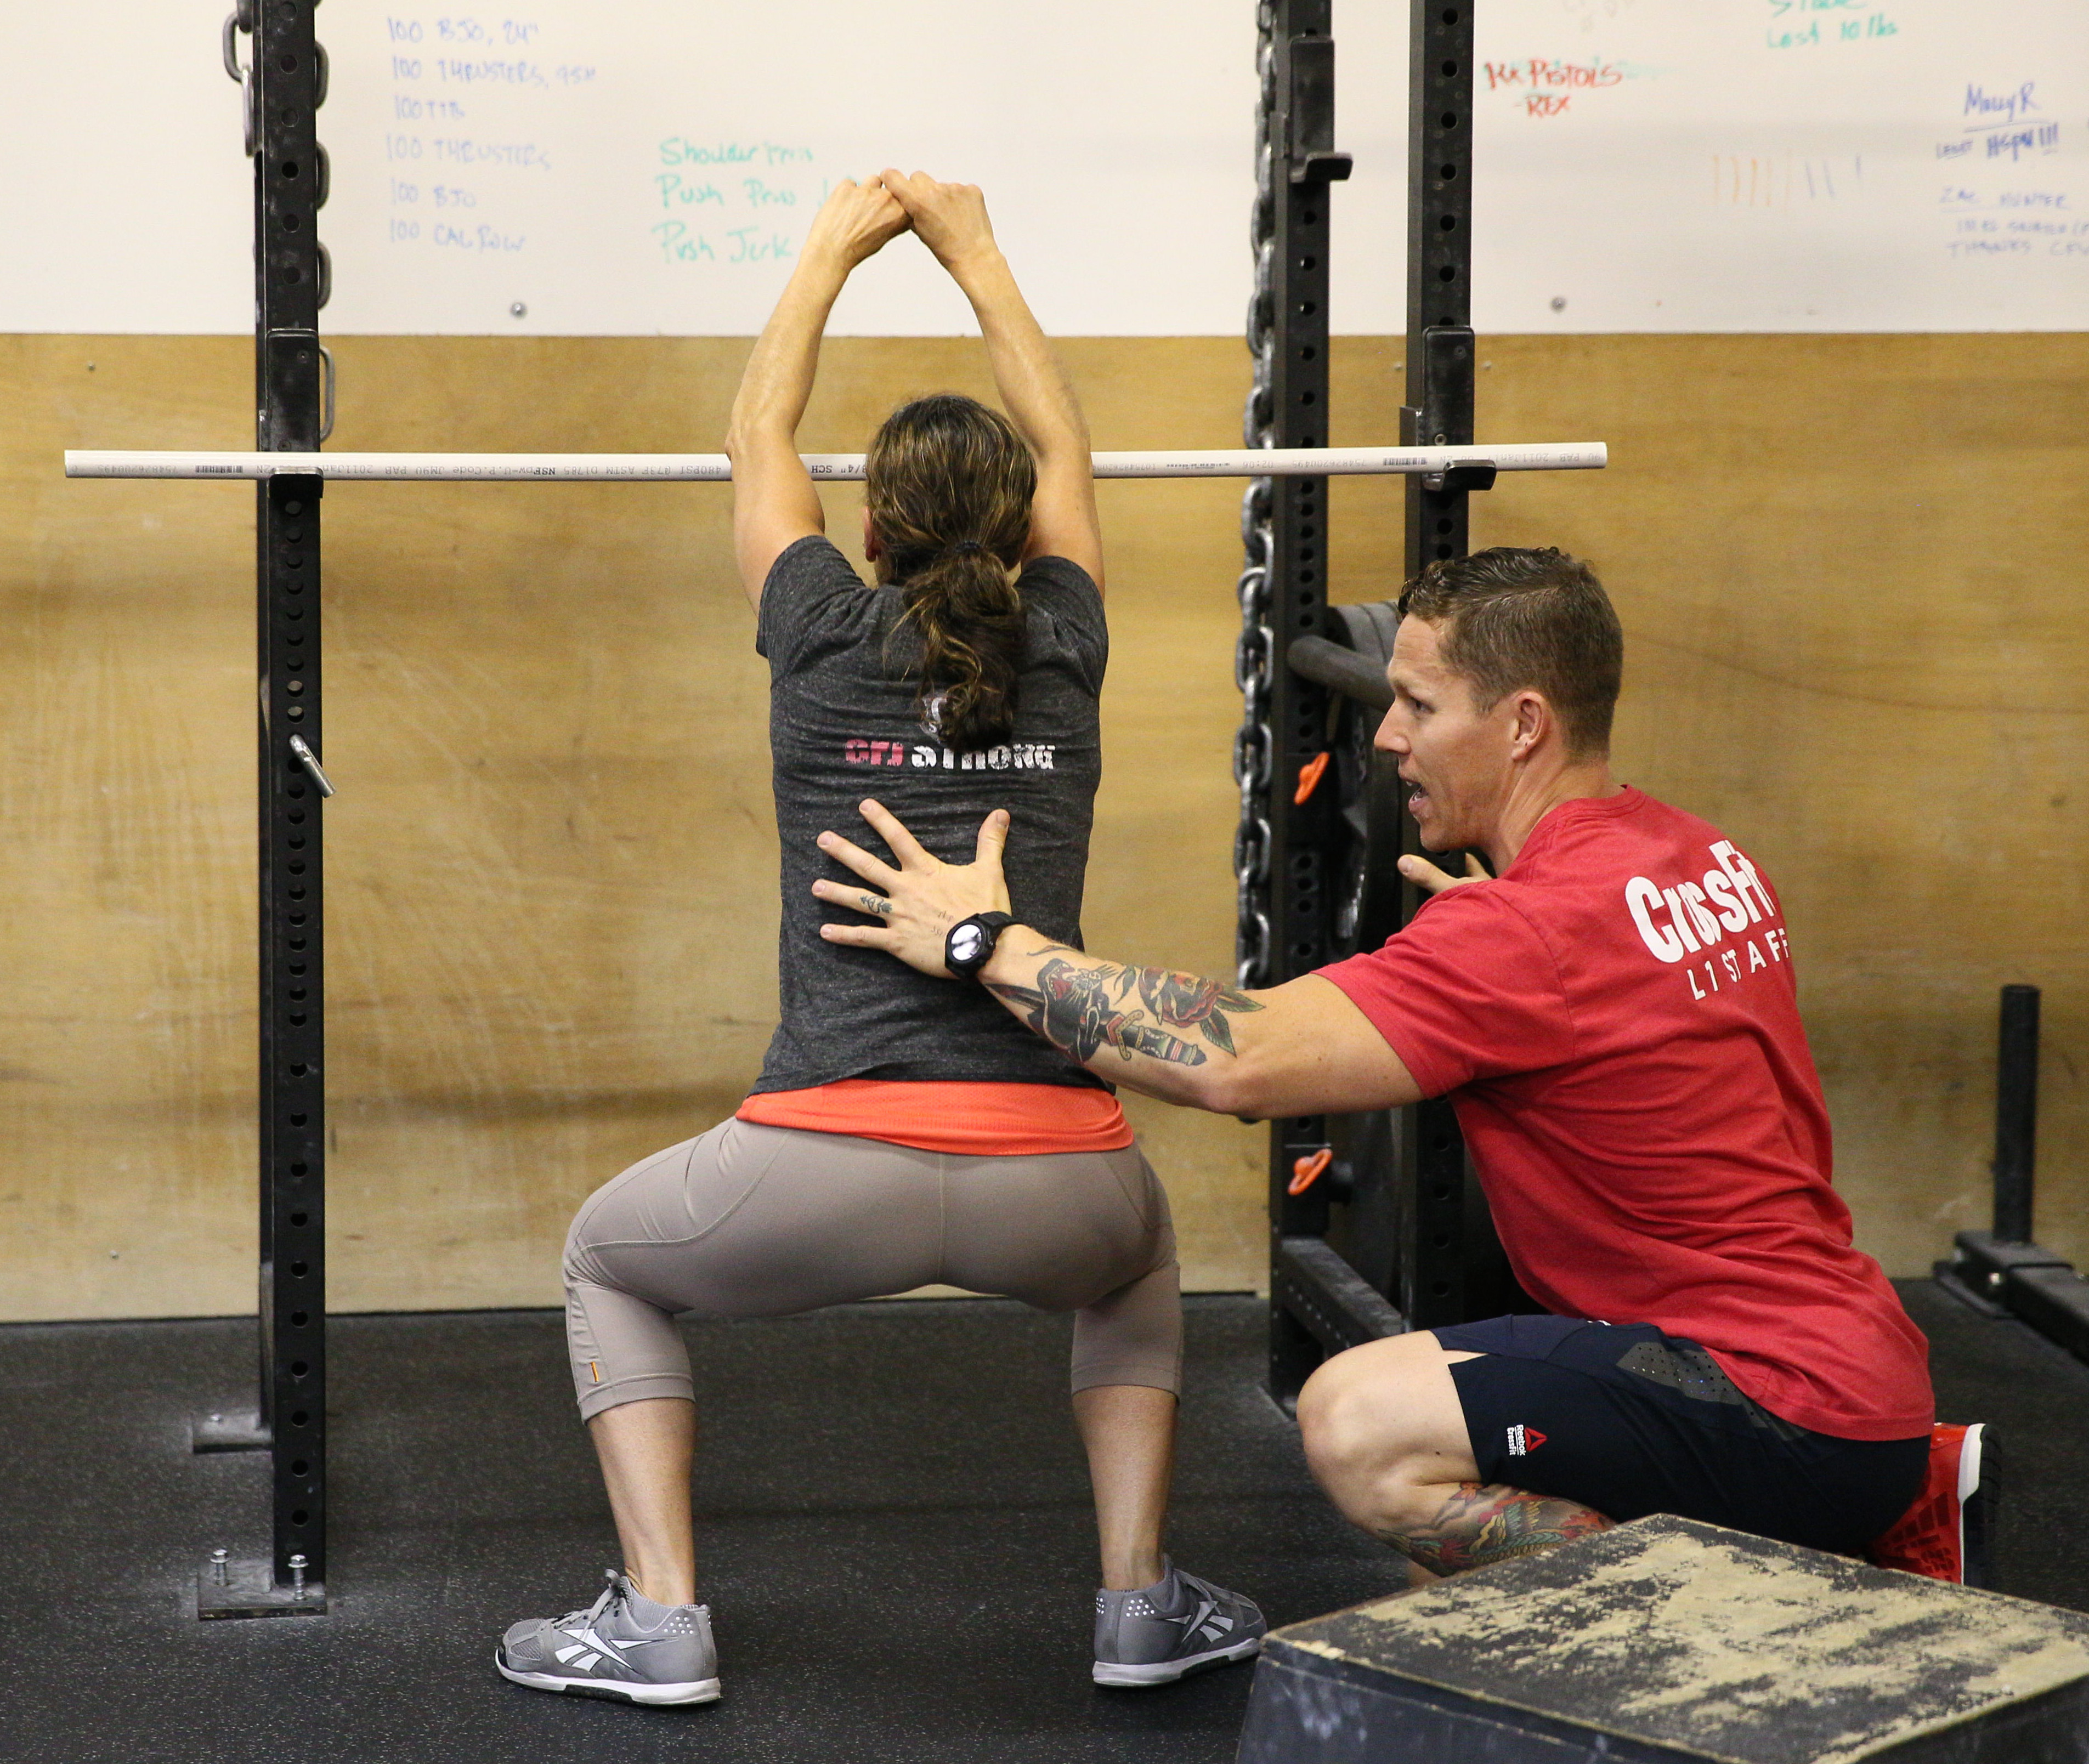 Credential Measuring Contest Crossfit Wins Keep Fitness Legal